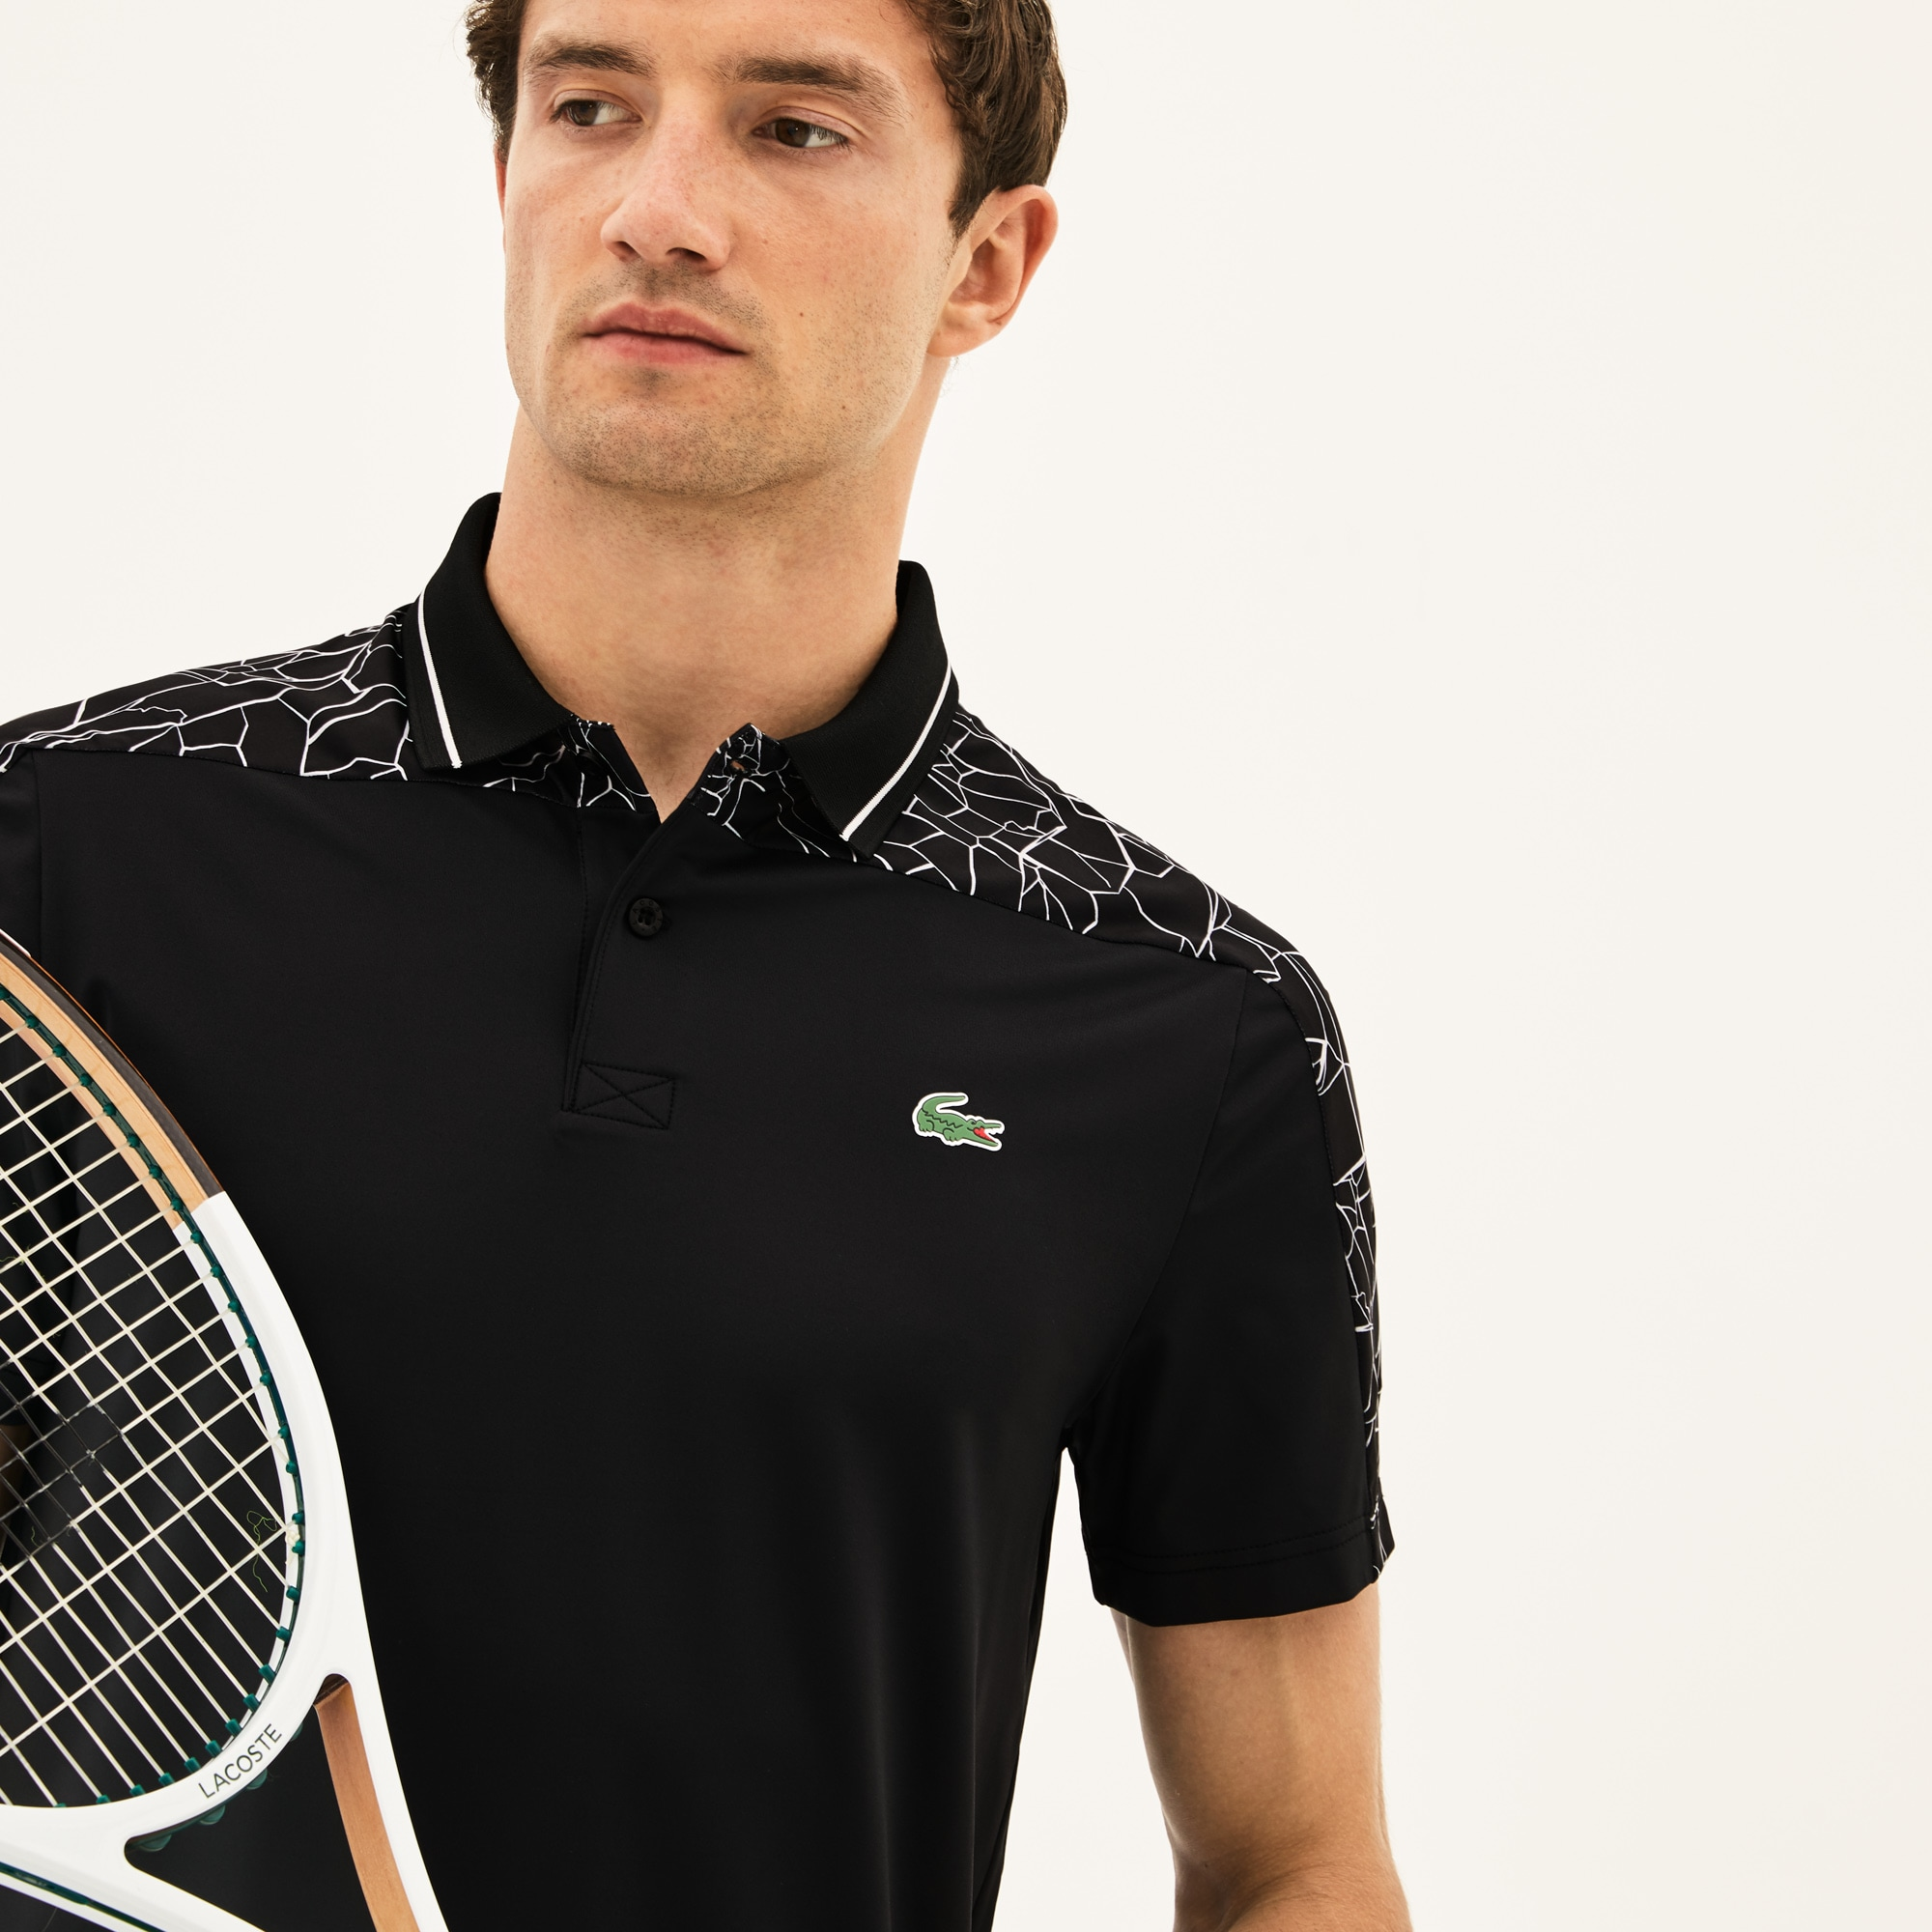 Men's Lacoste SPORT NOVAK DJOKOVIC-ON COURT COLLECTION Stretch Technical Jersey Polo Shirt